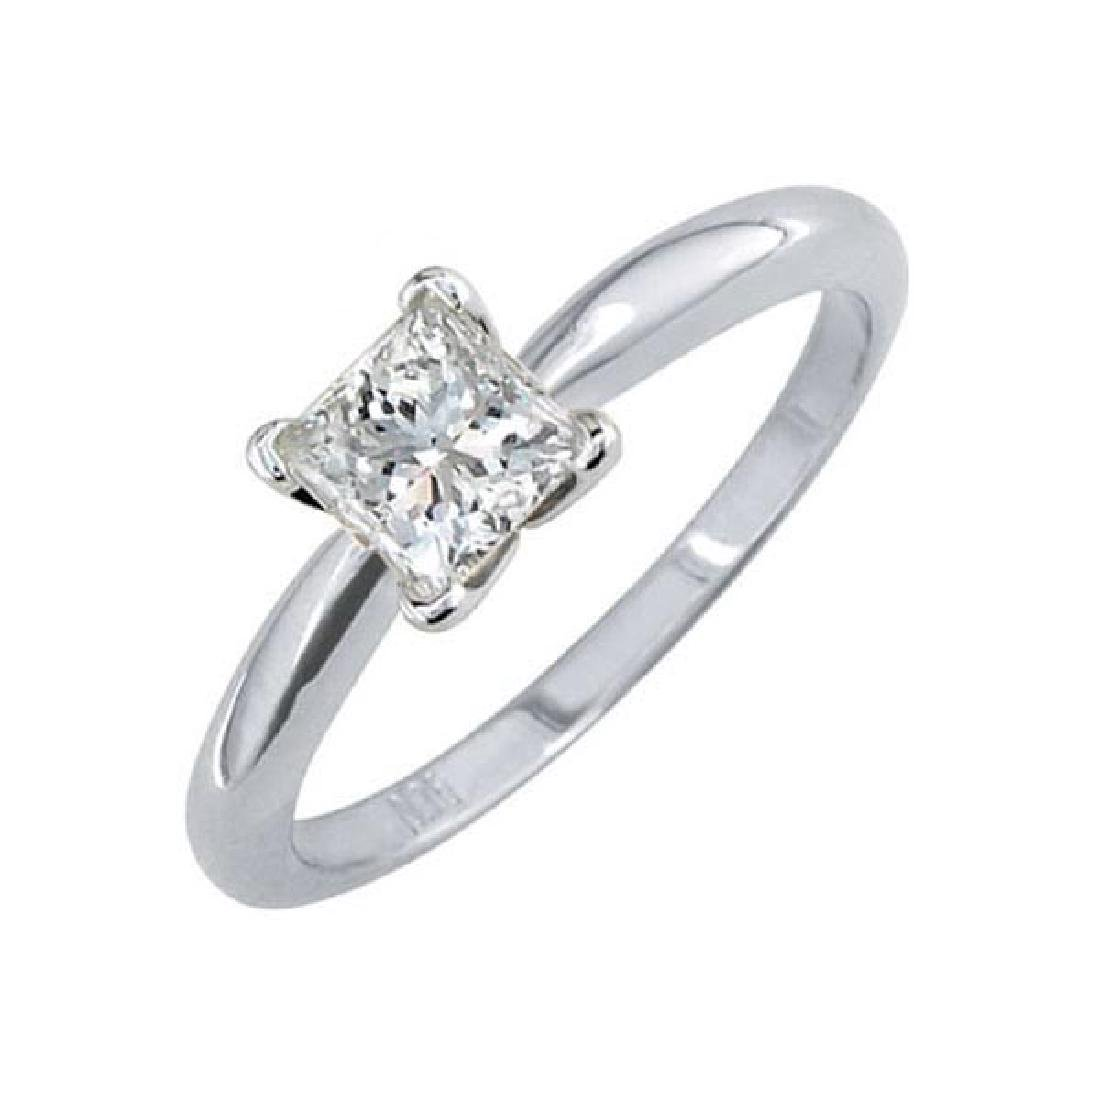 Certified 1.03 CTW Princess Diamond Solitaire 14k Ring